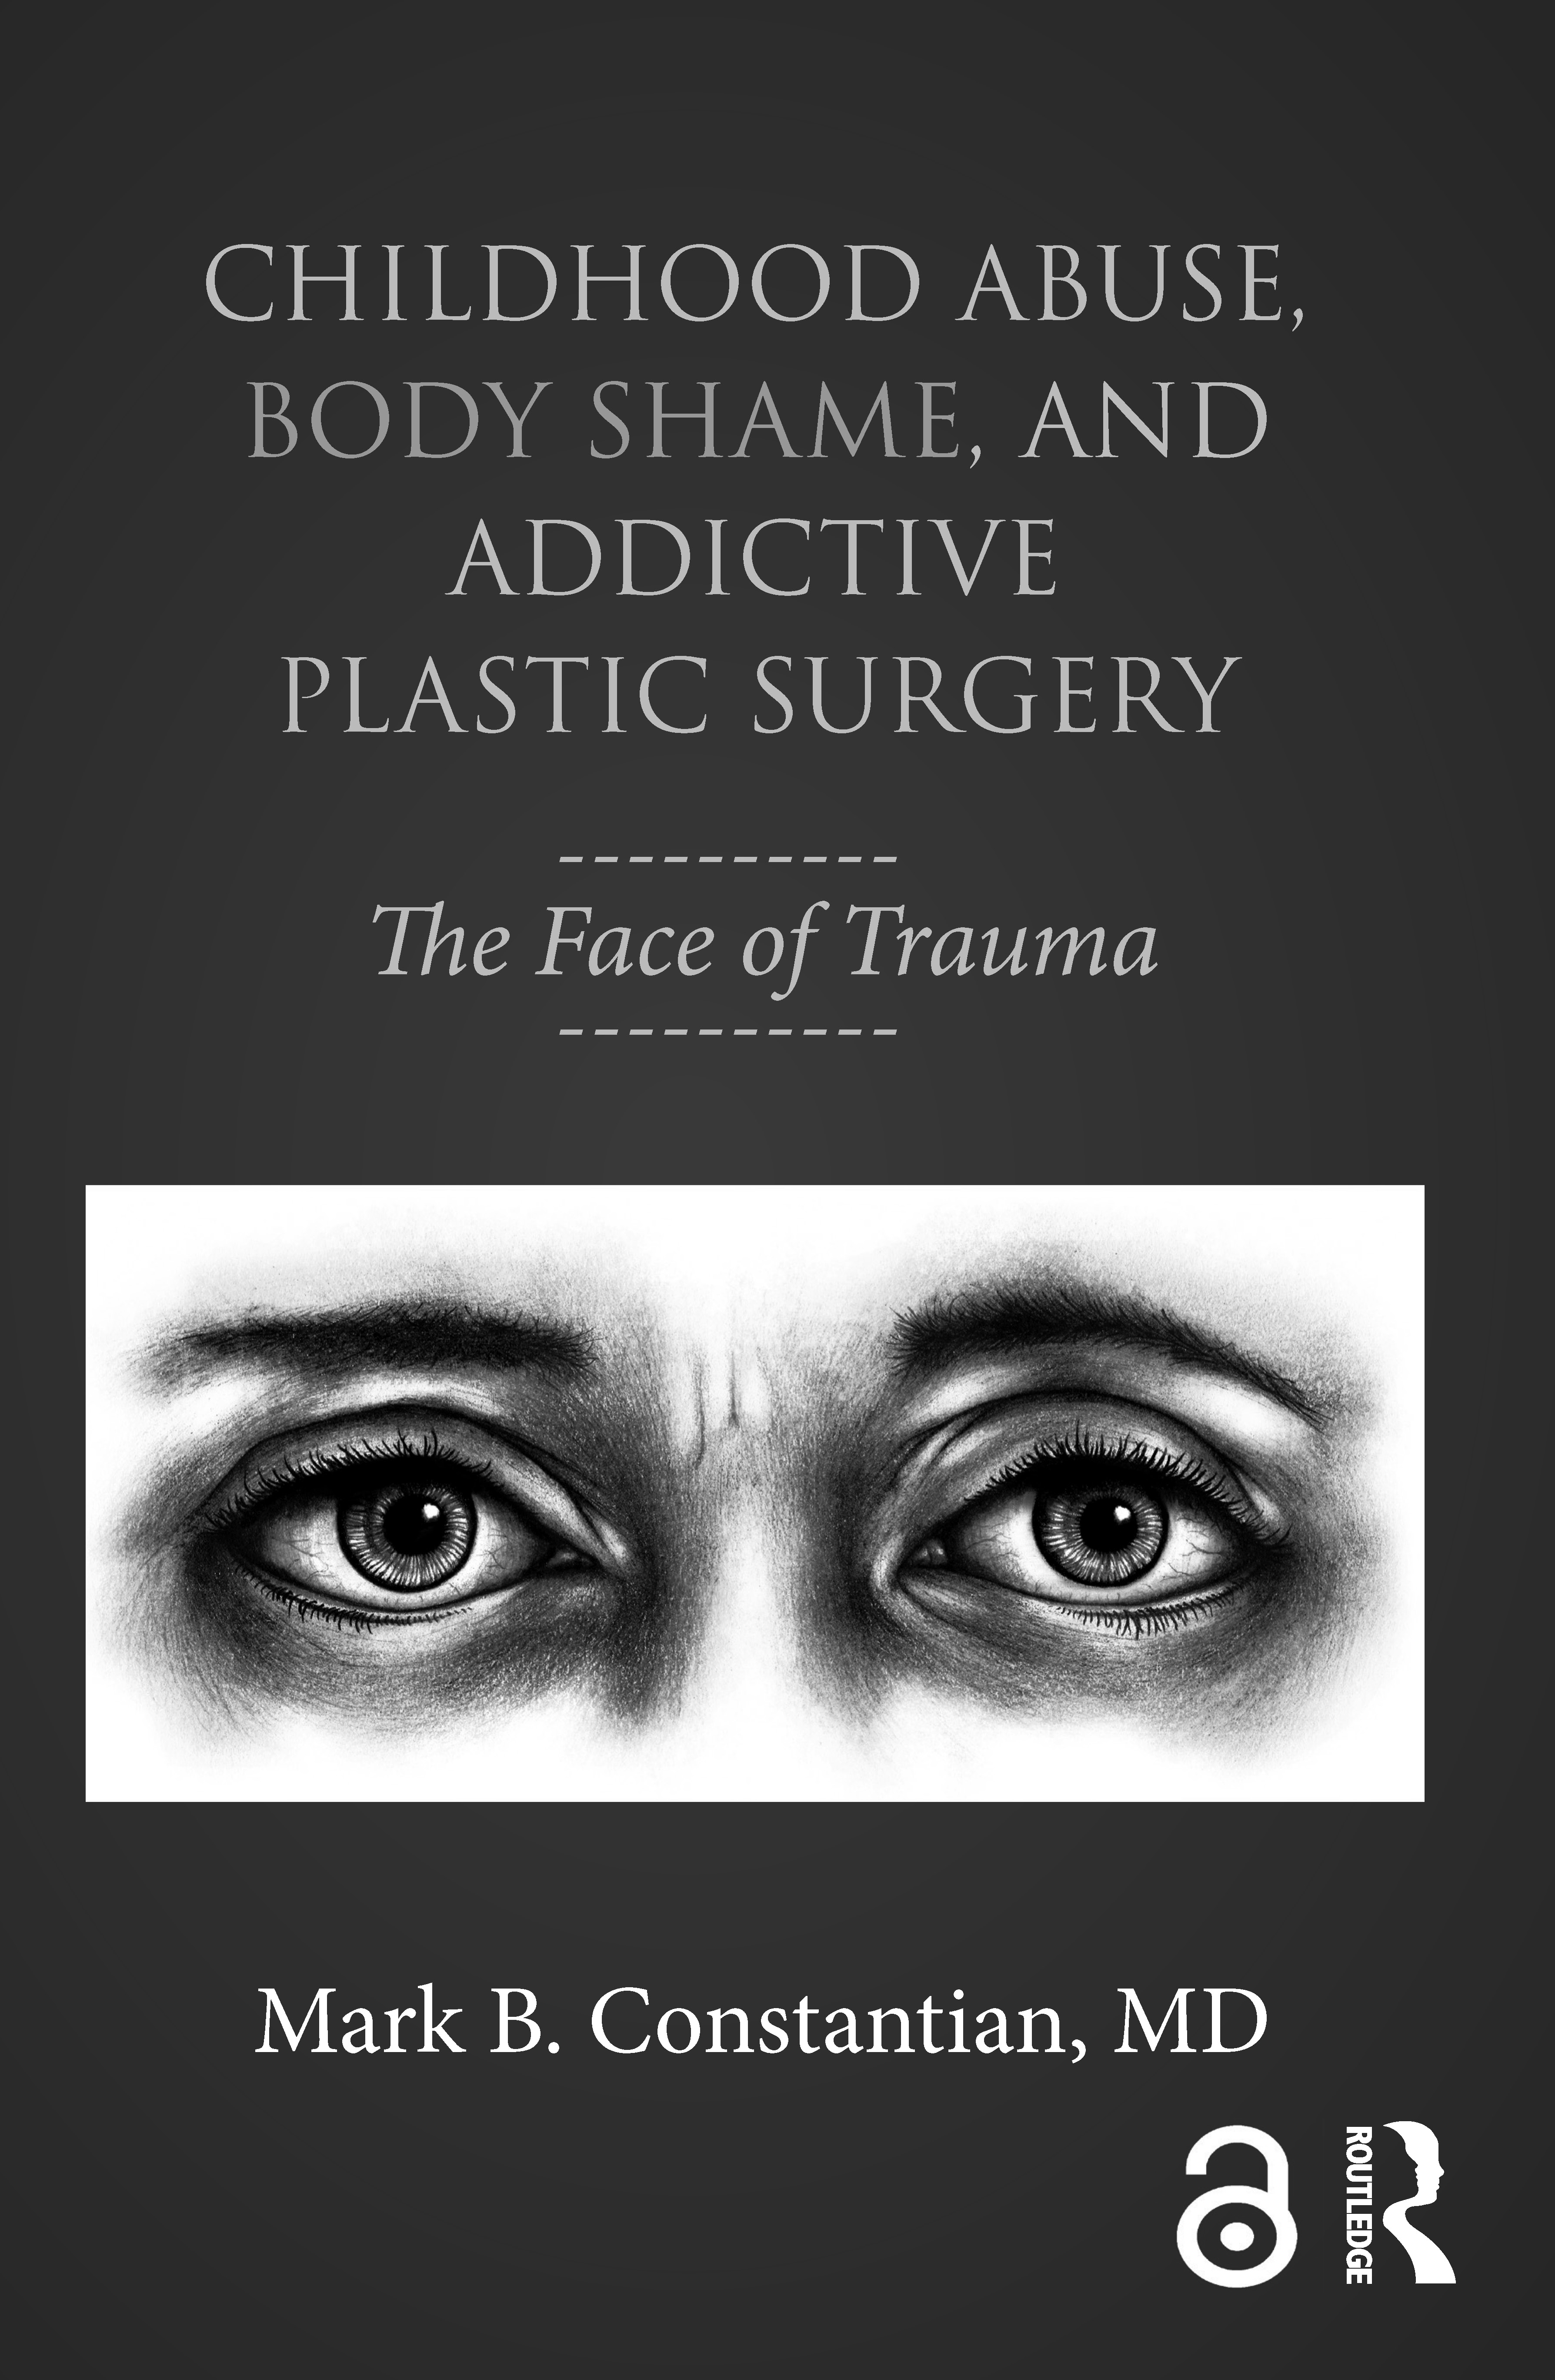 Childhood Abuse, Body Shame, and Addictive Plastic Surgery: The Face of Trauma book cover